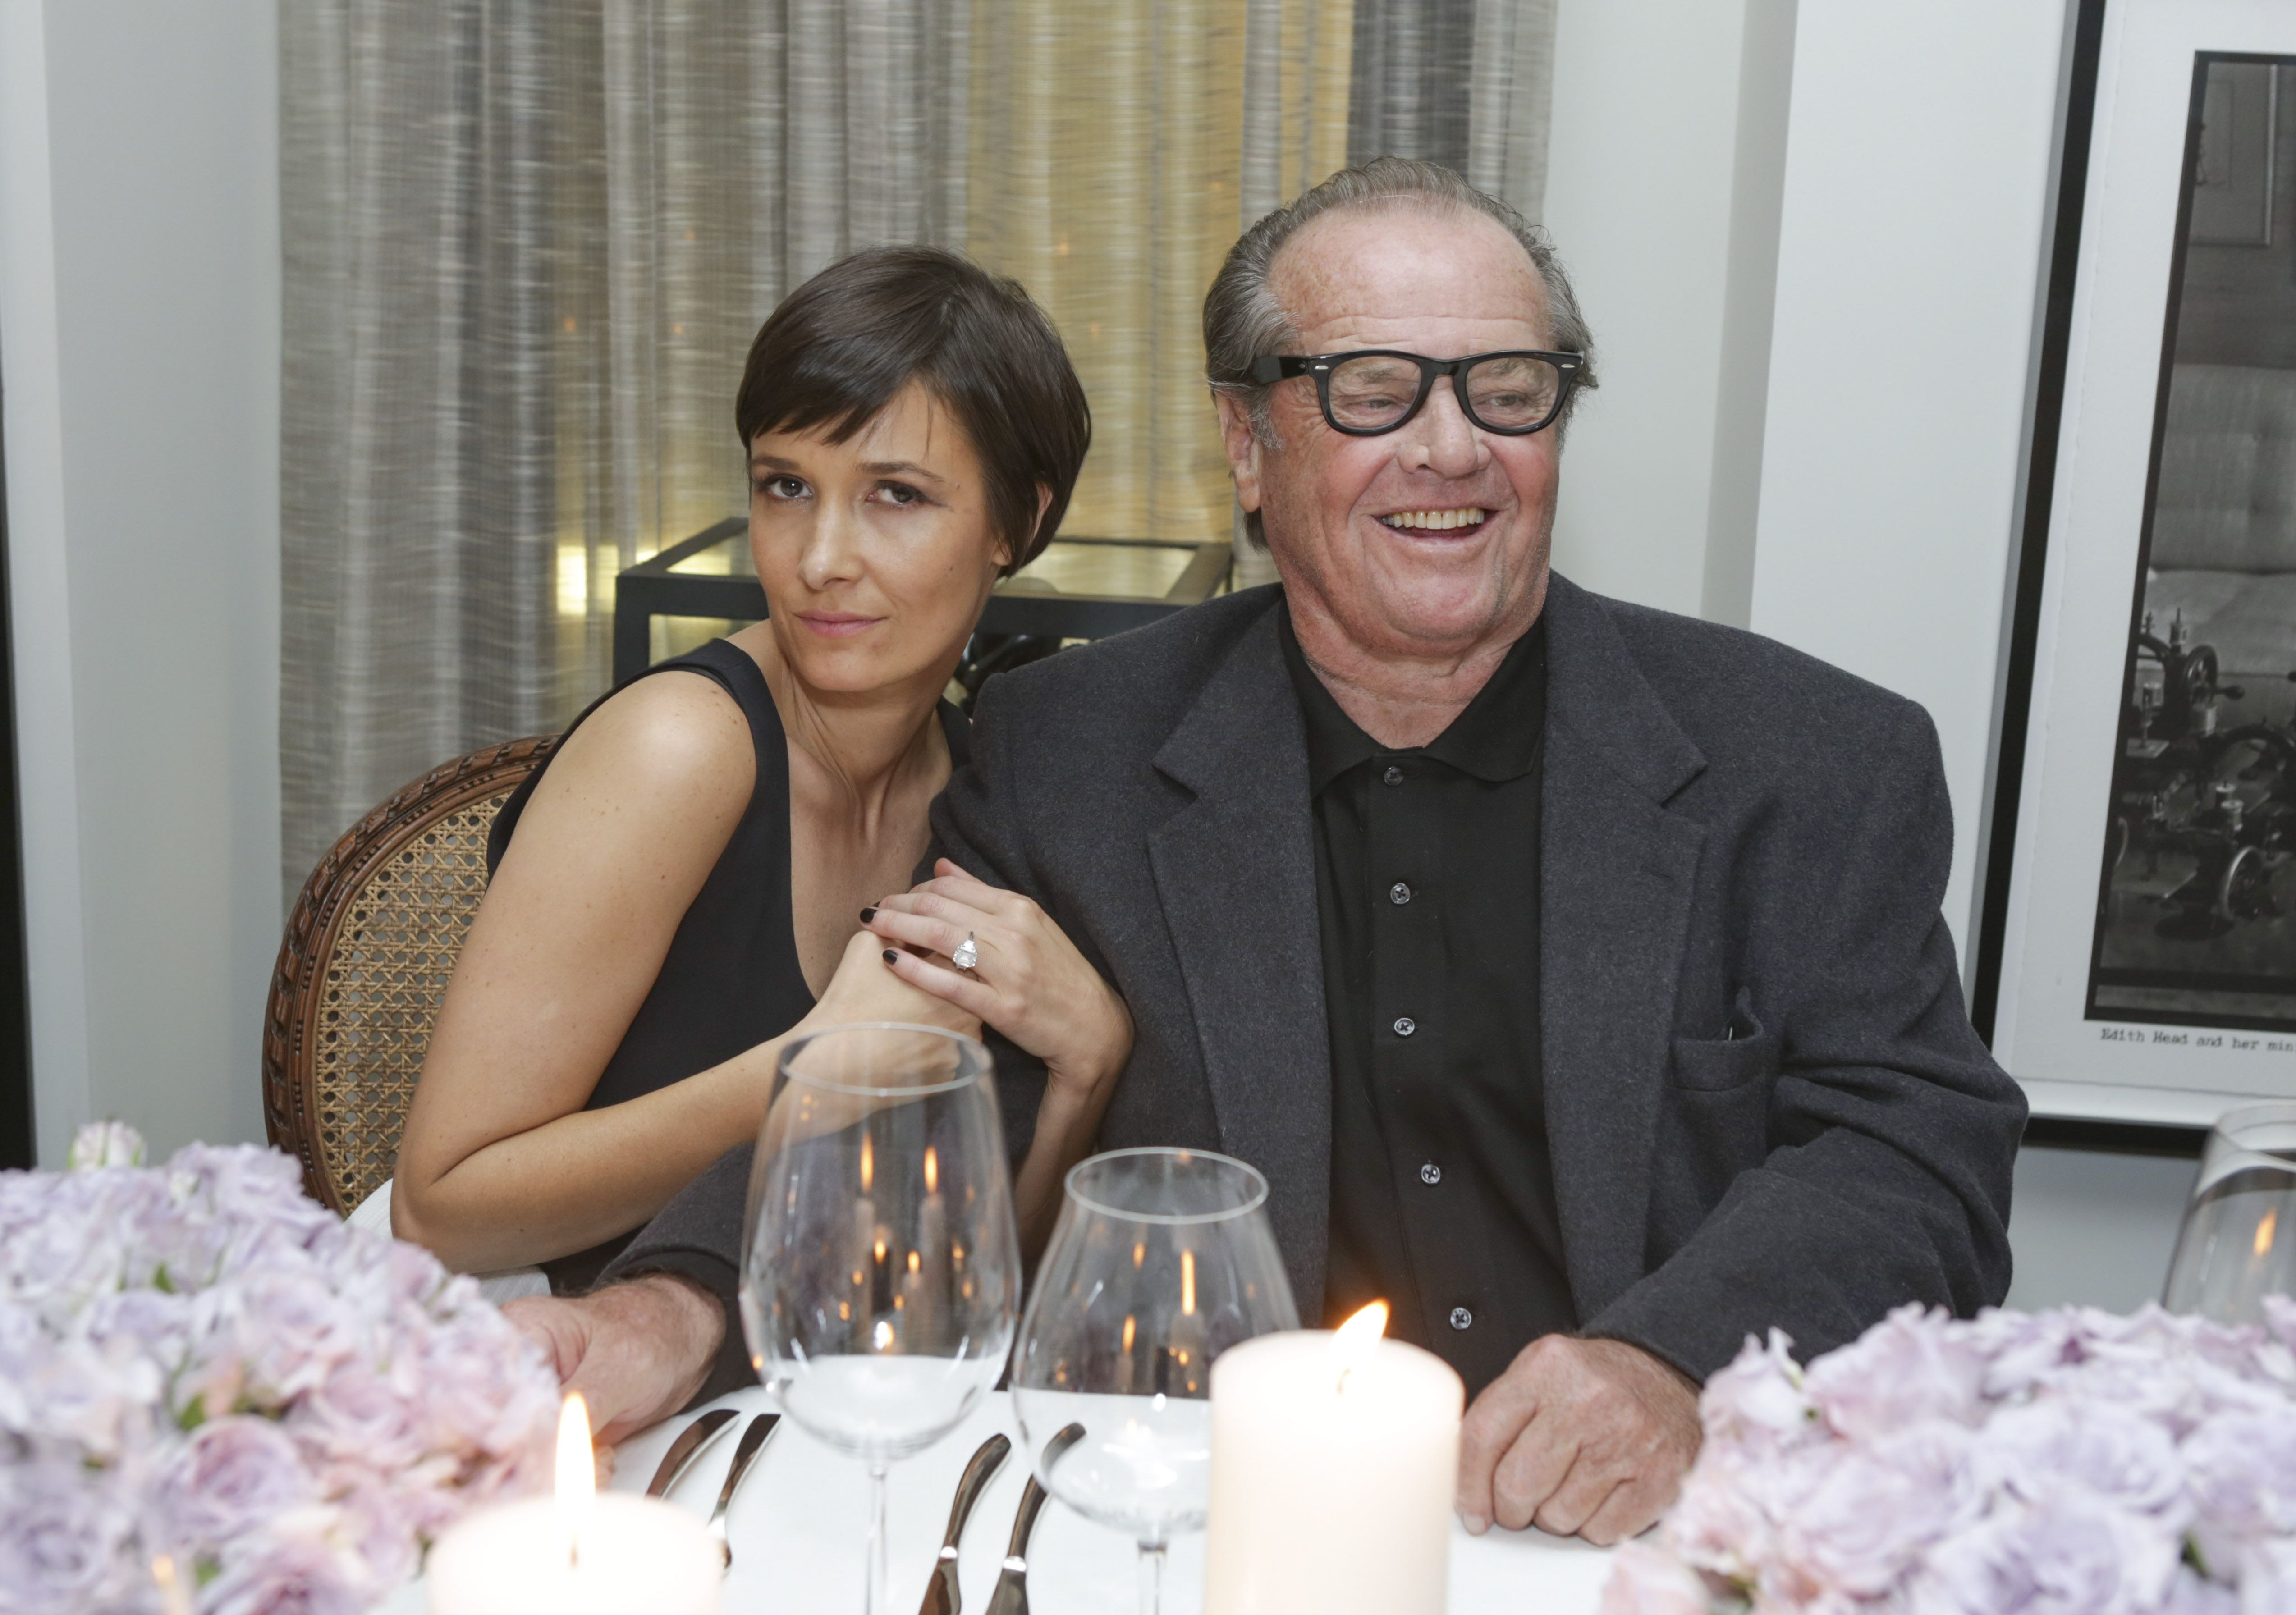 Cassandra Grey and Jack Nicholson at a Violet Gray dinner in 2014.